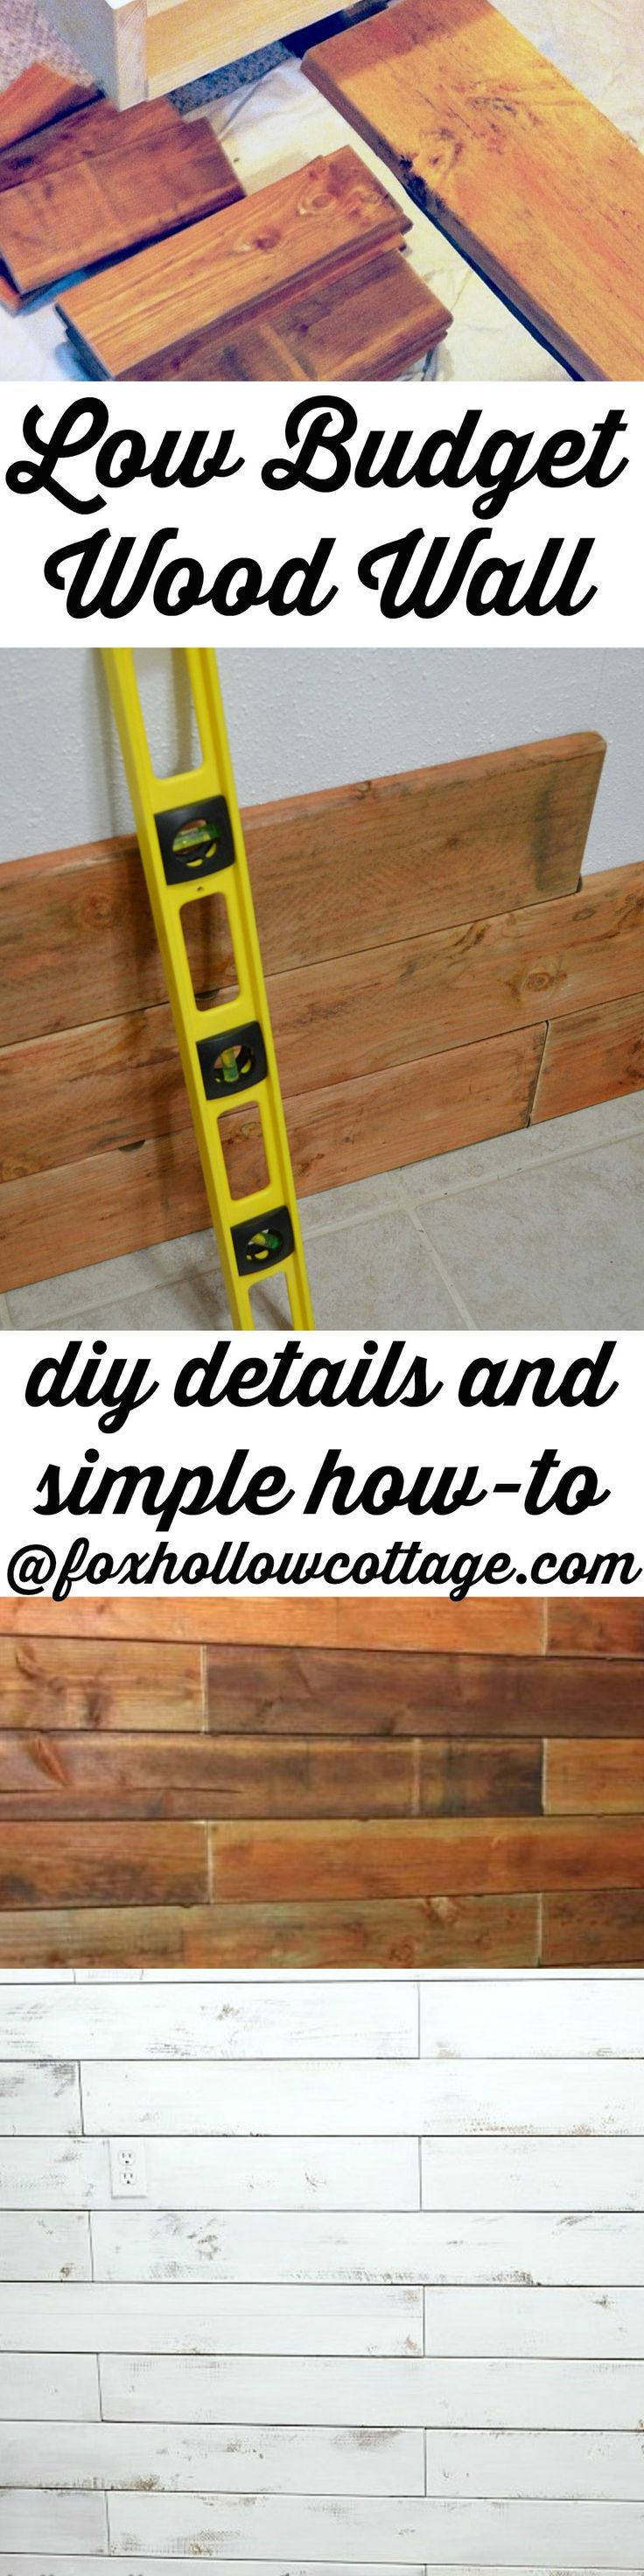 Low Budget DIY Wood Planked Wall How-To www.foxhollowcottage